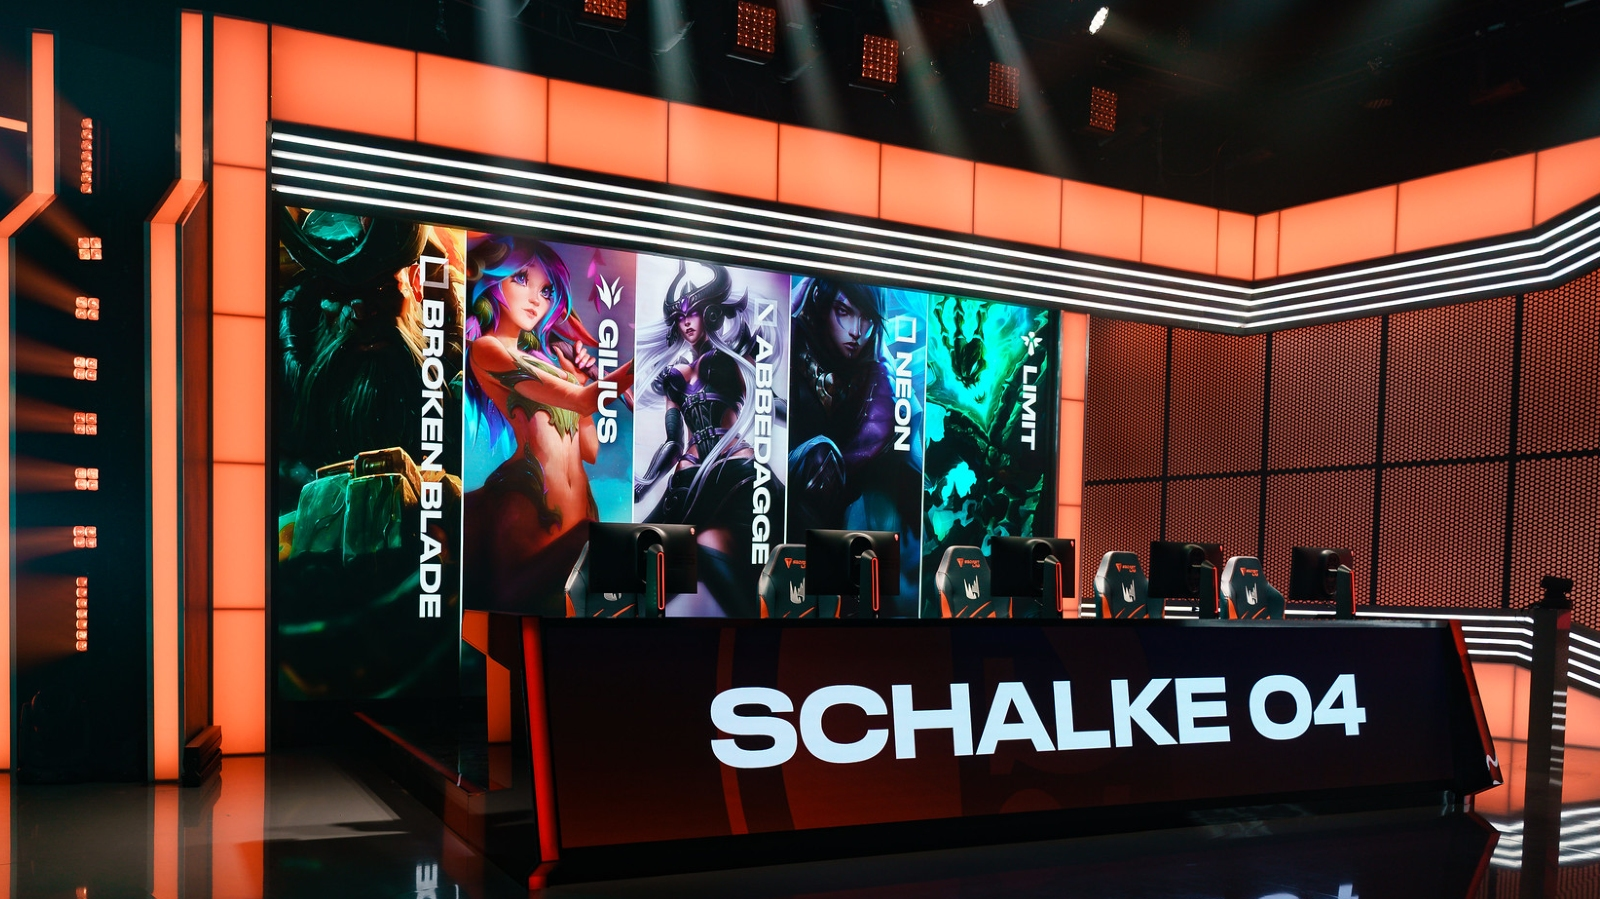 Schalke_04_reportedly_selling_LEC_slot_for_20_million_euroes